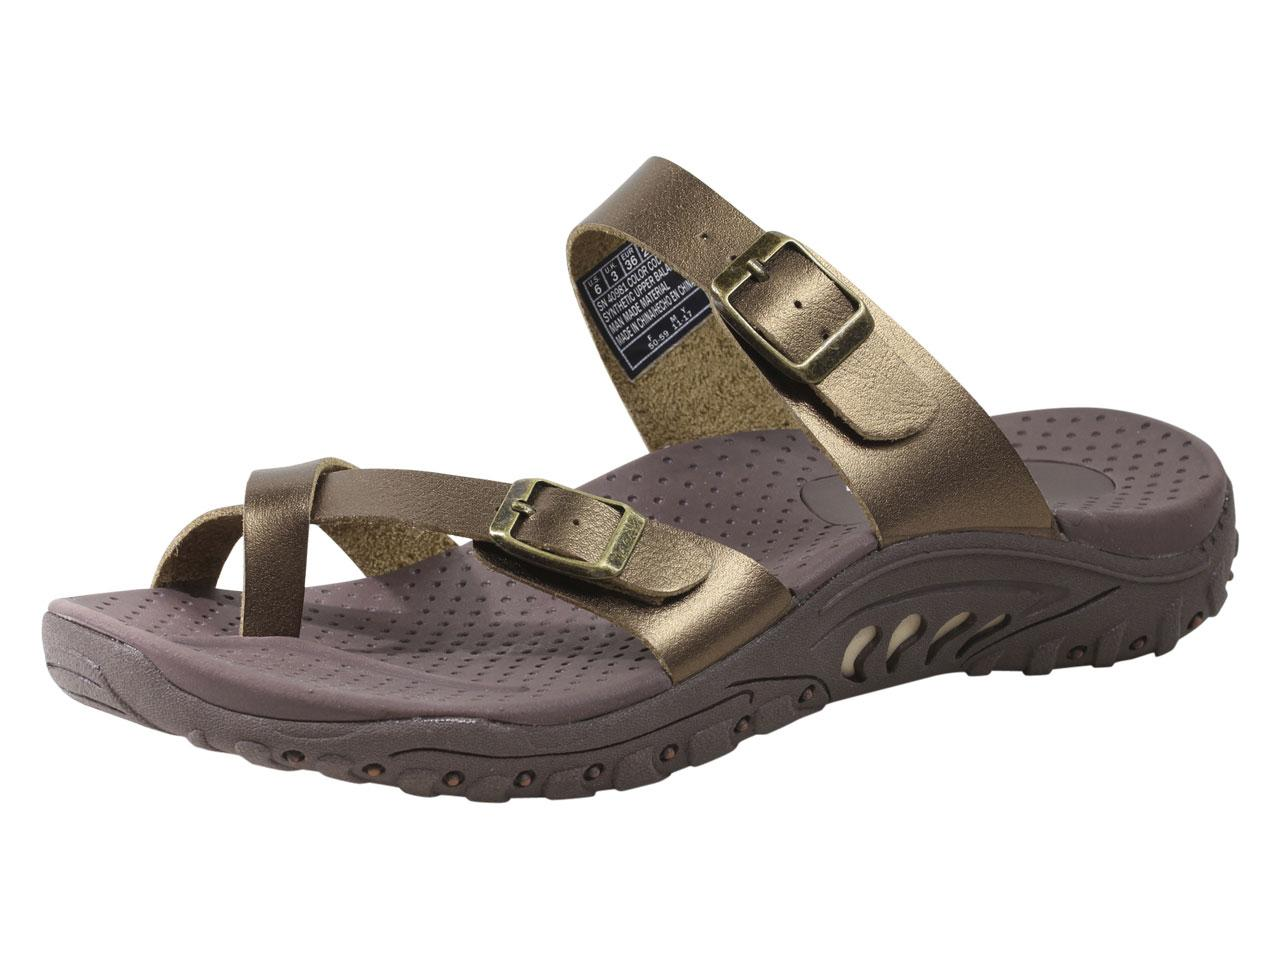 Skechers Women S Reggae Wishlist Strappy Flip Flops